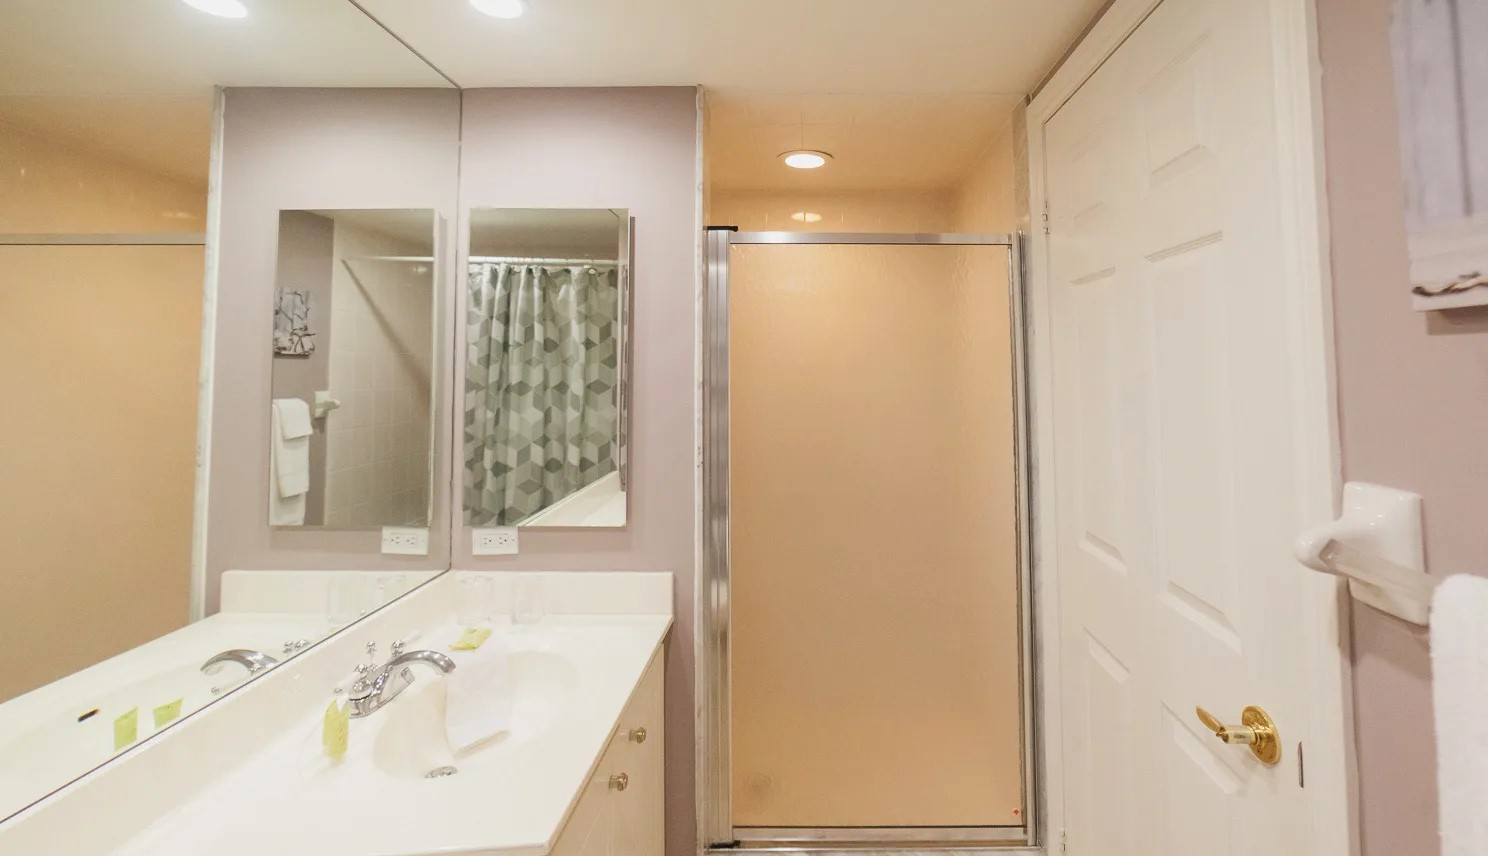 4-piece ensuite bath with standing shower and large vanity.